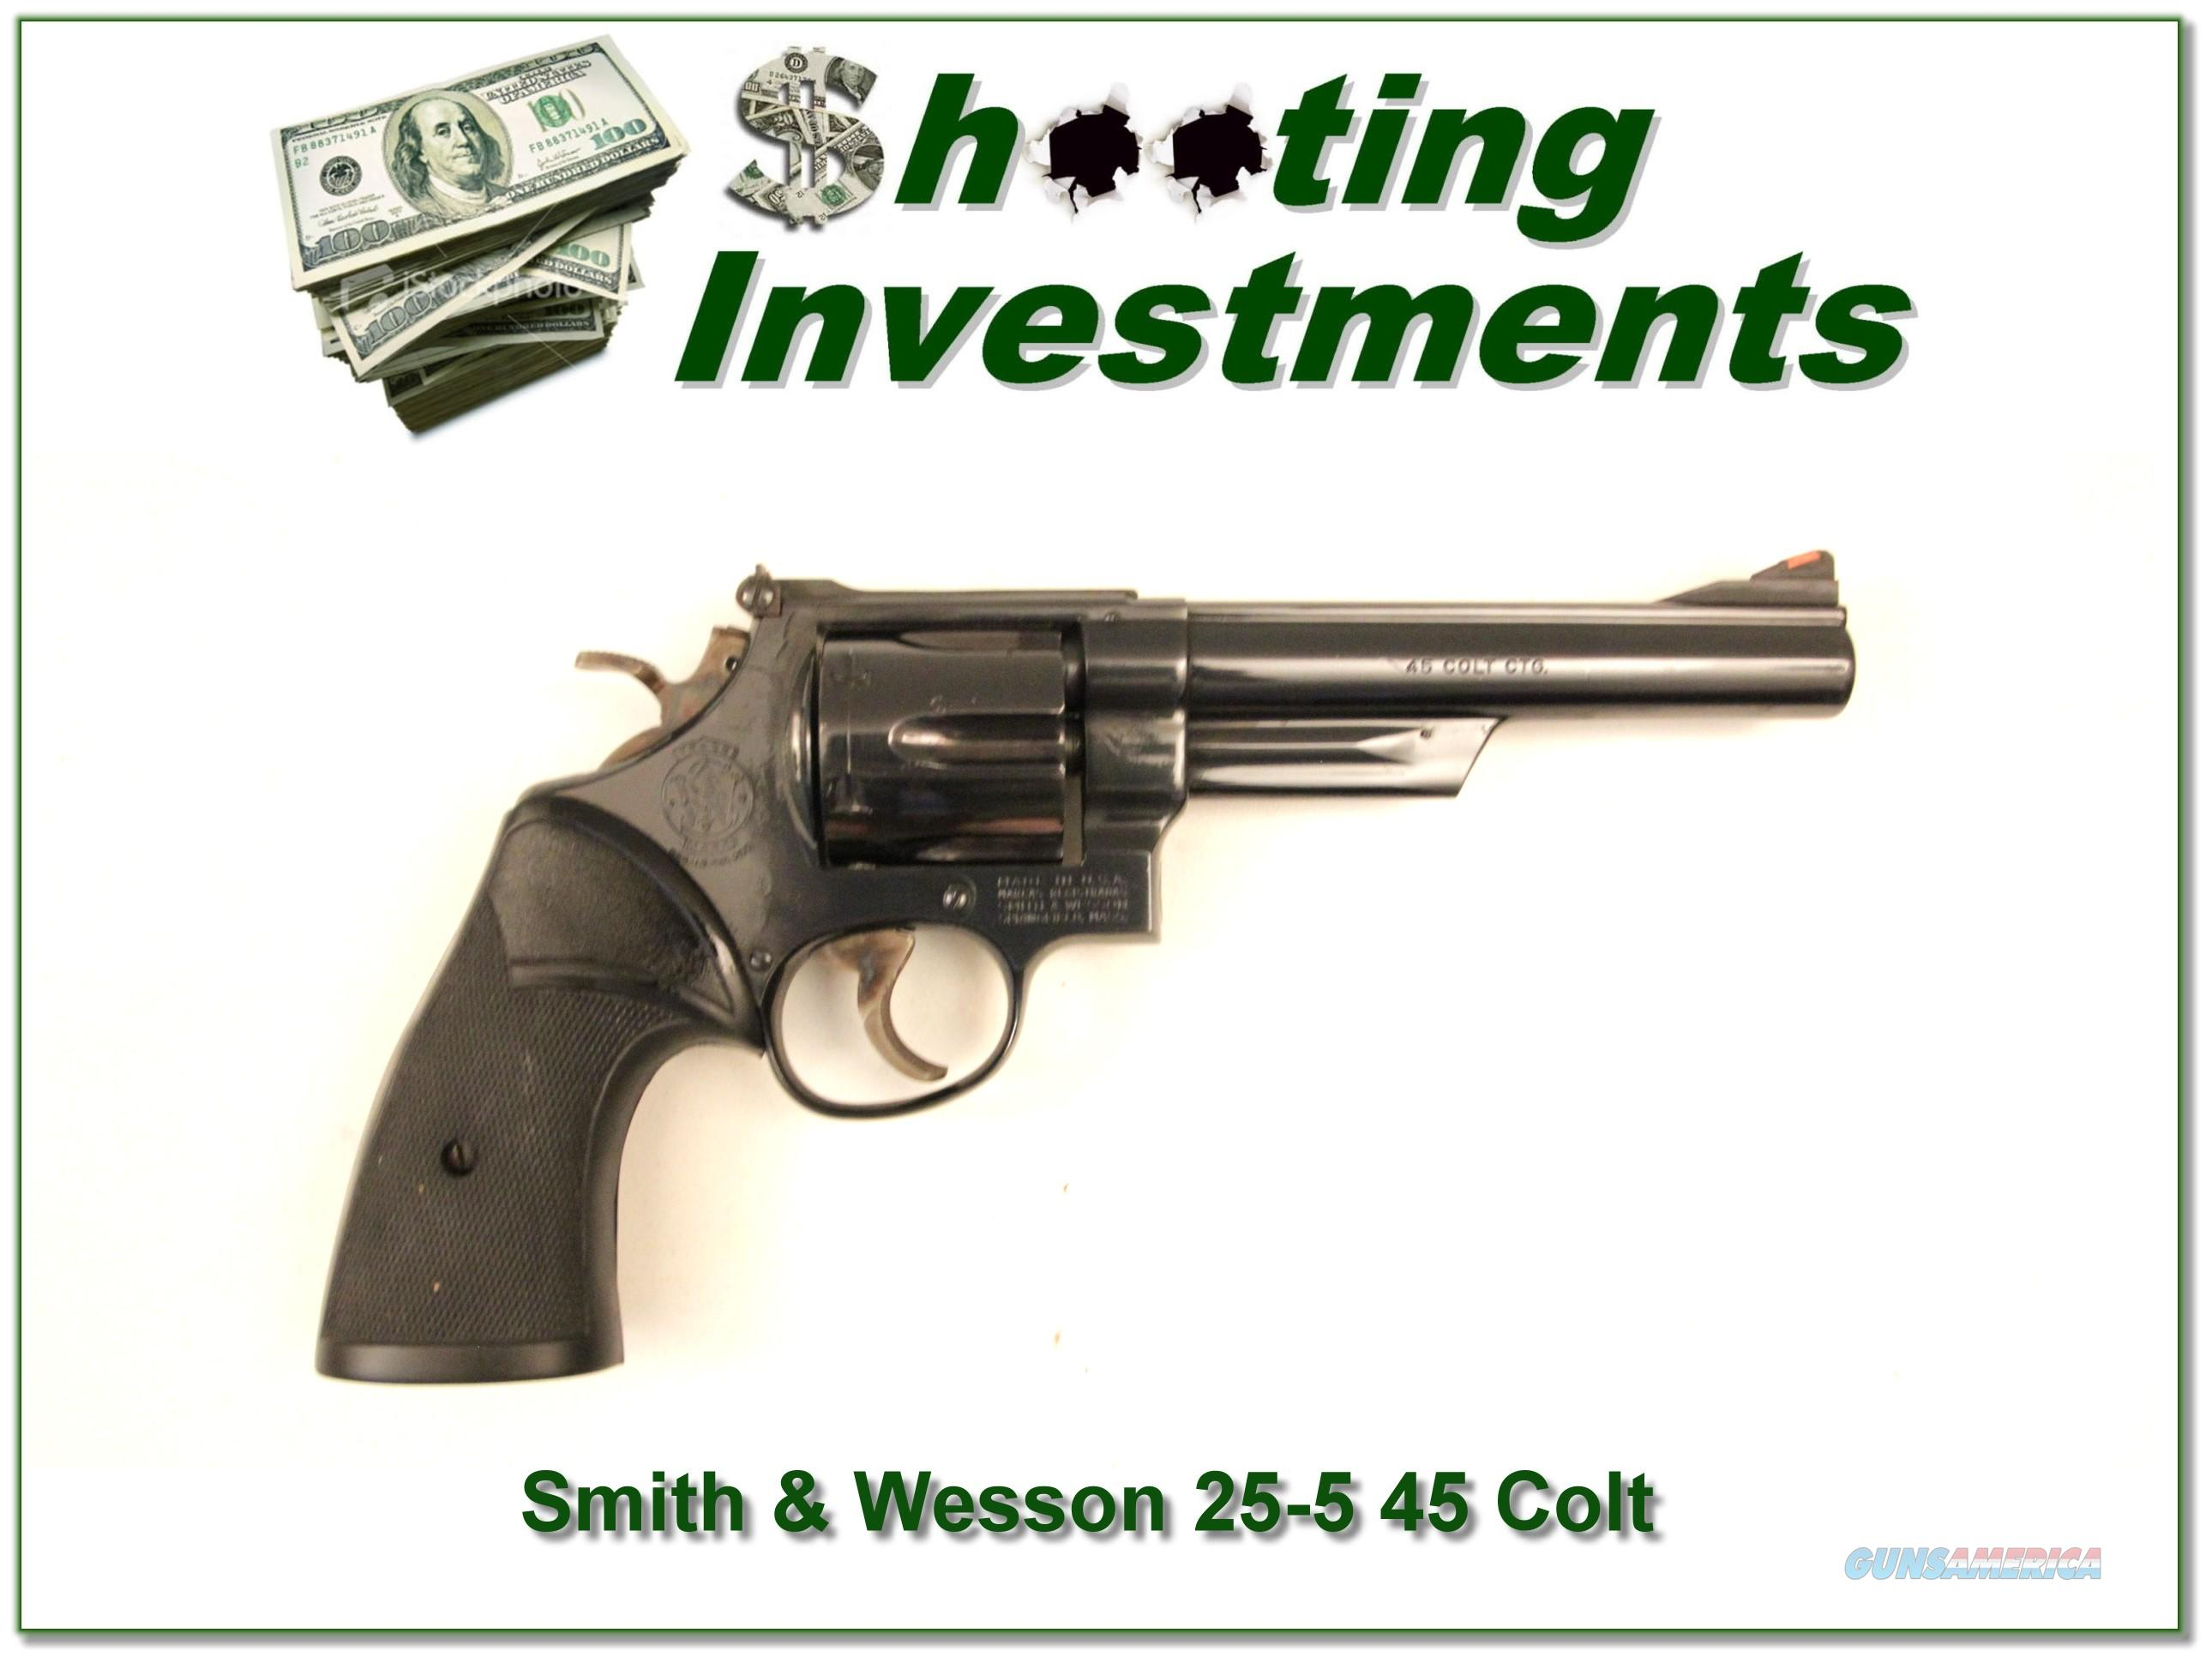 Smith & Wesson 25-5 45 Colt Blued 6 in  Guns > Pistols > Smith & Wesson Revolvers > Full Frame Revolver